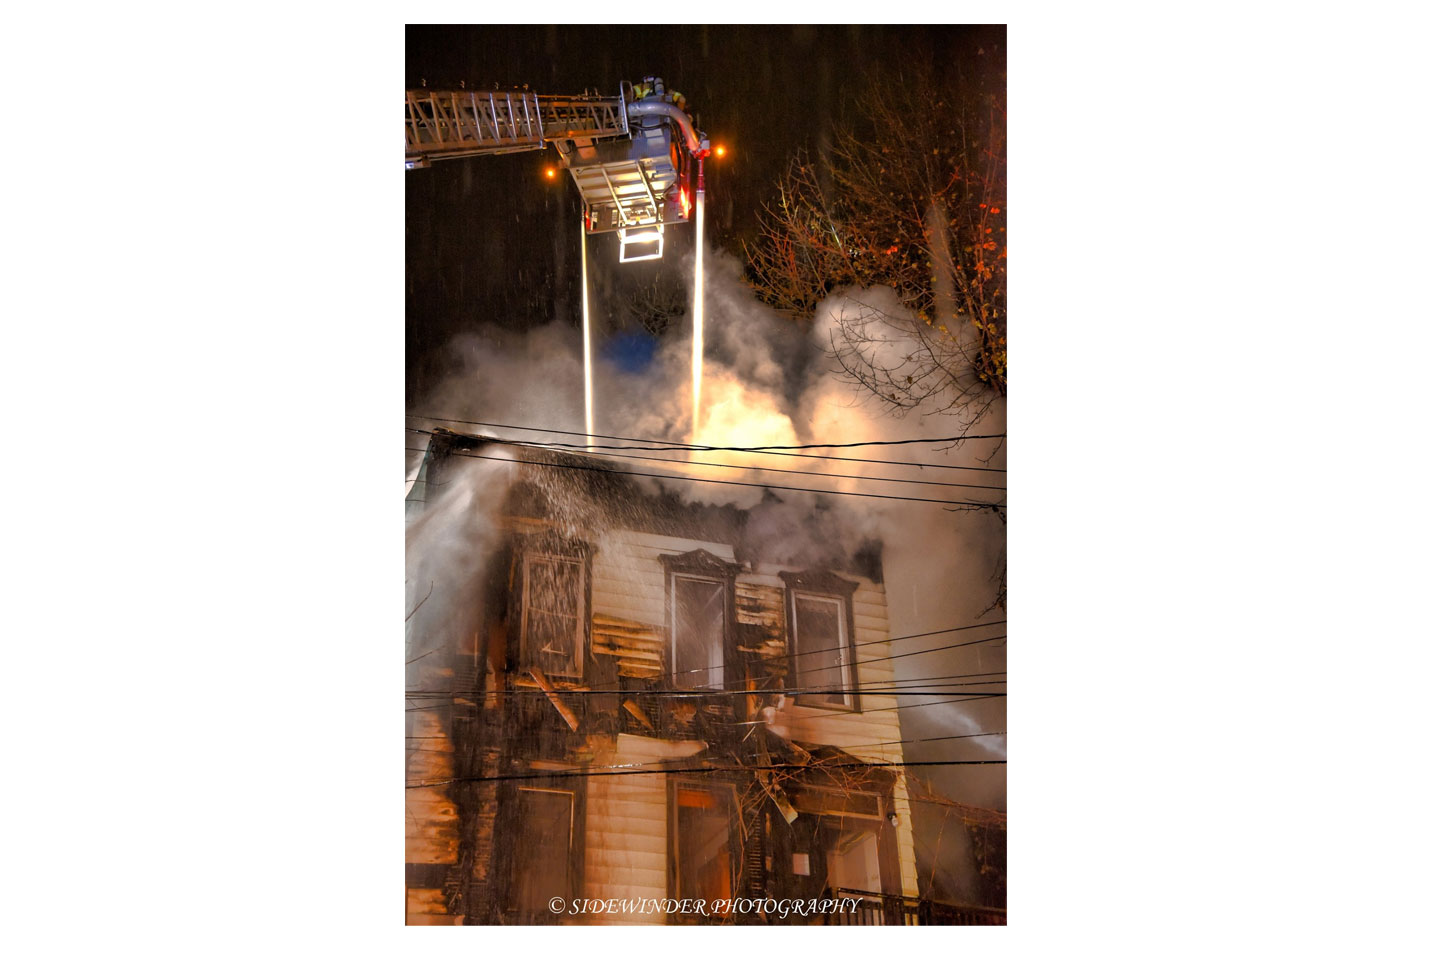 Aerial stream in use at house fire.